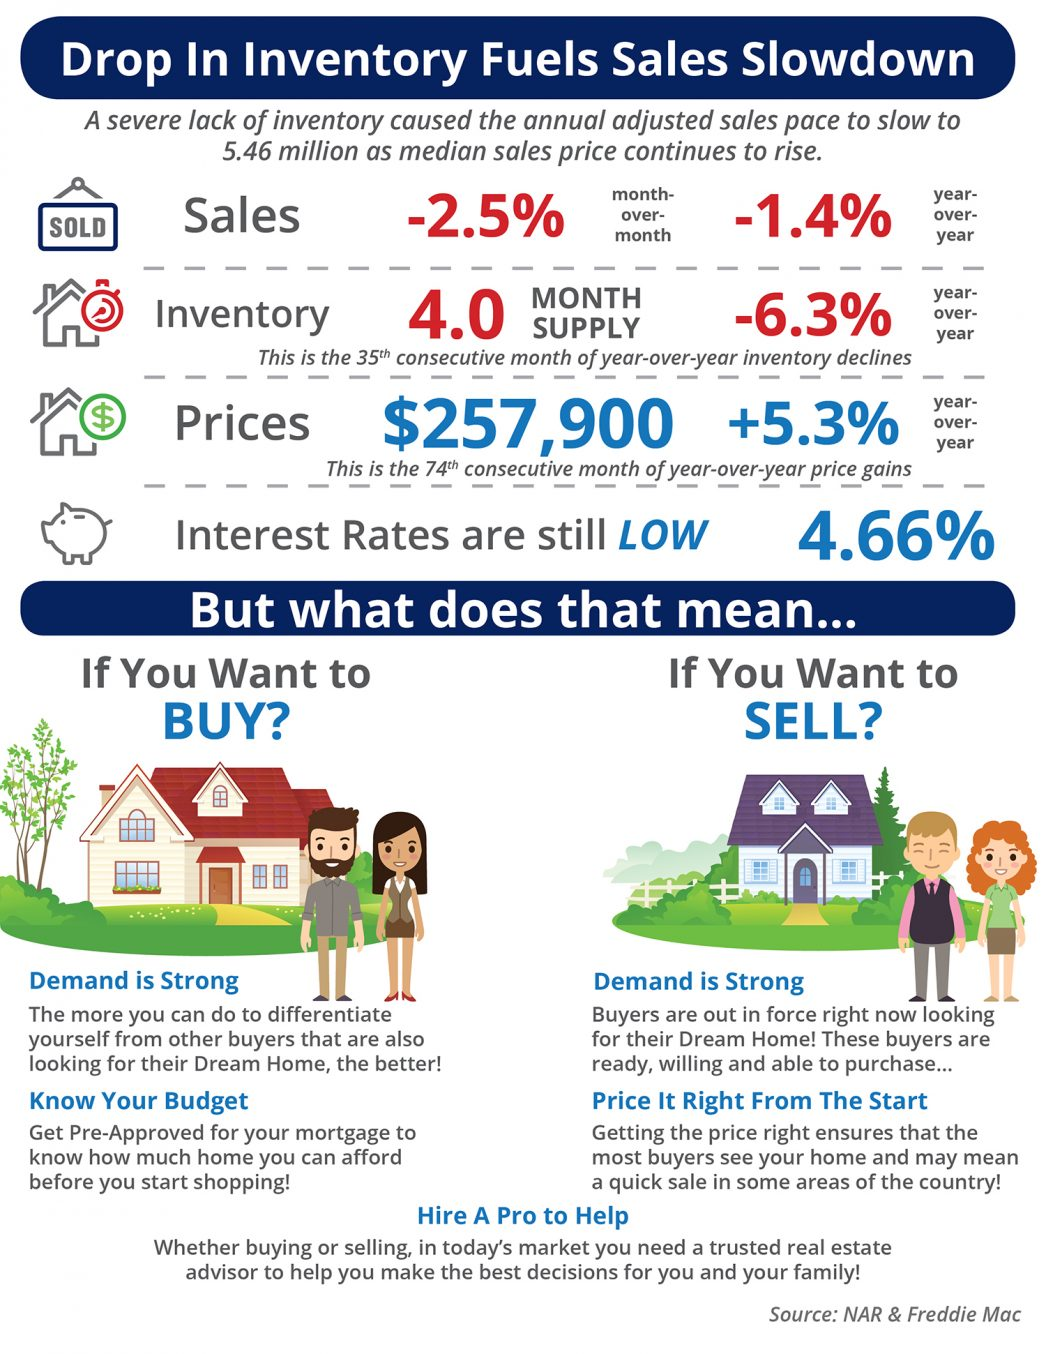 Drop in Inventory Fuels Sales Slowdown [INFOGRAPHIC] | MyKCM